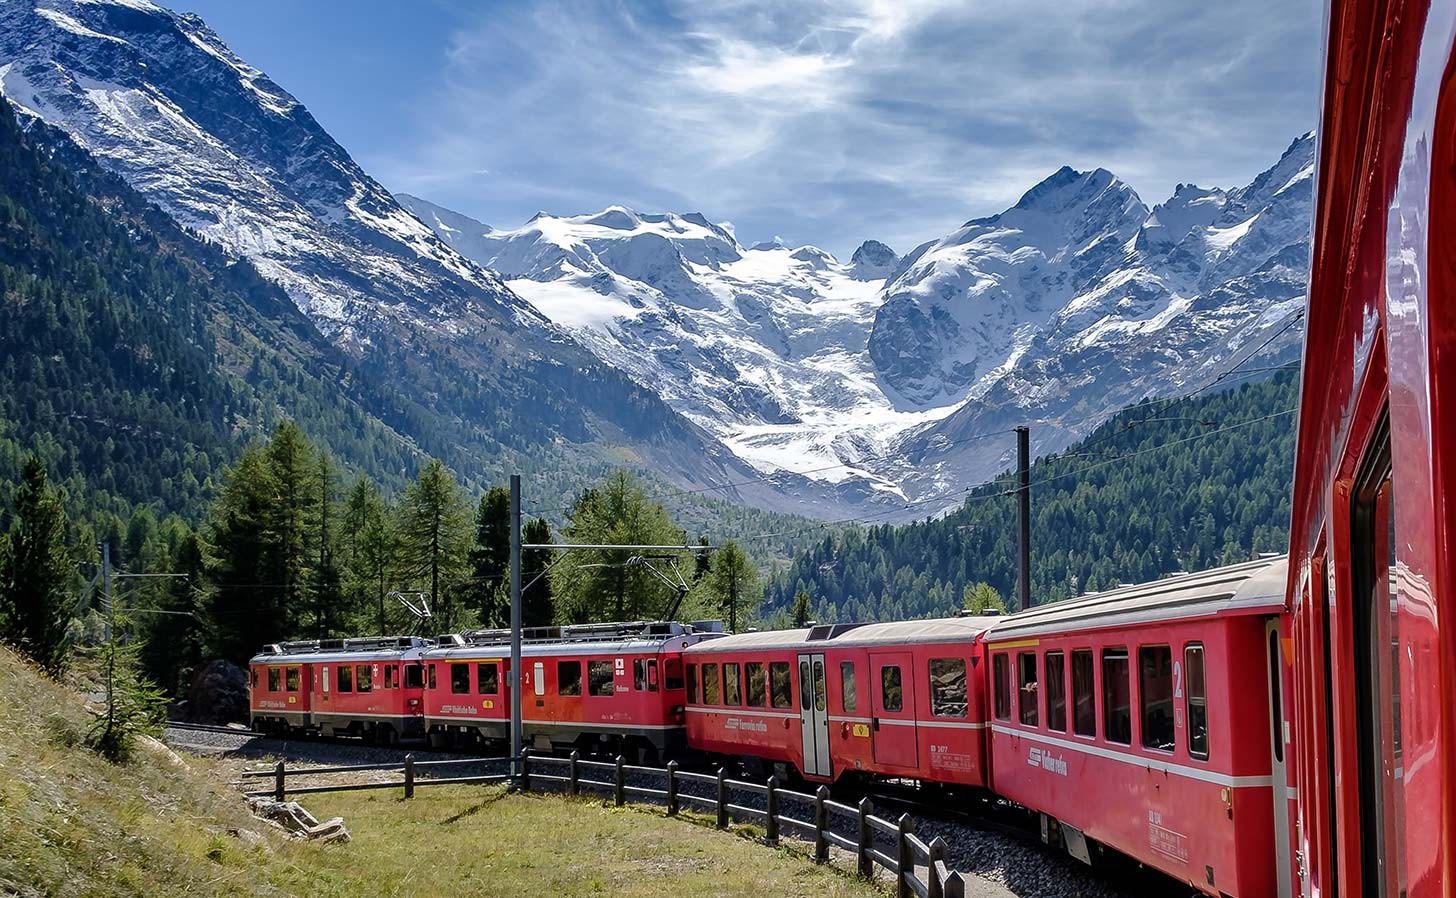 Bernina-Express in the Montebello curve, Pontresina, Switzerland. Photo: Andreas Stutz / Unsplash